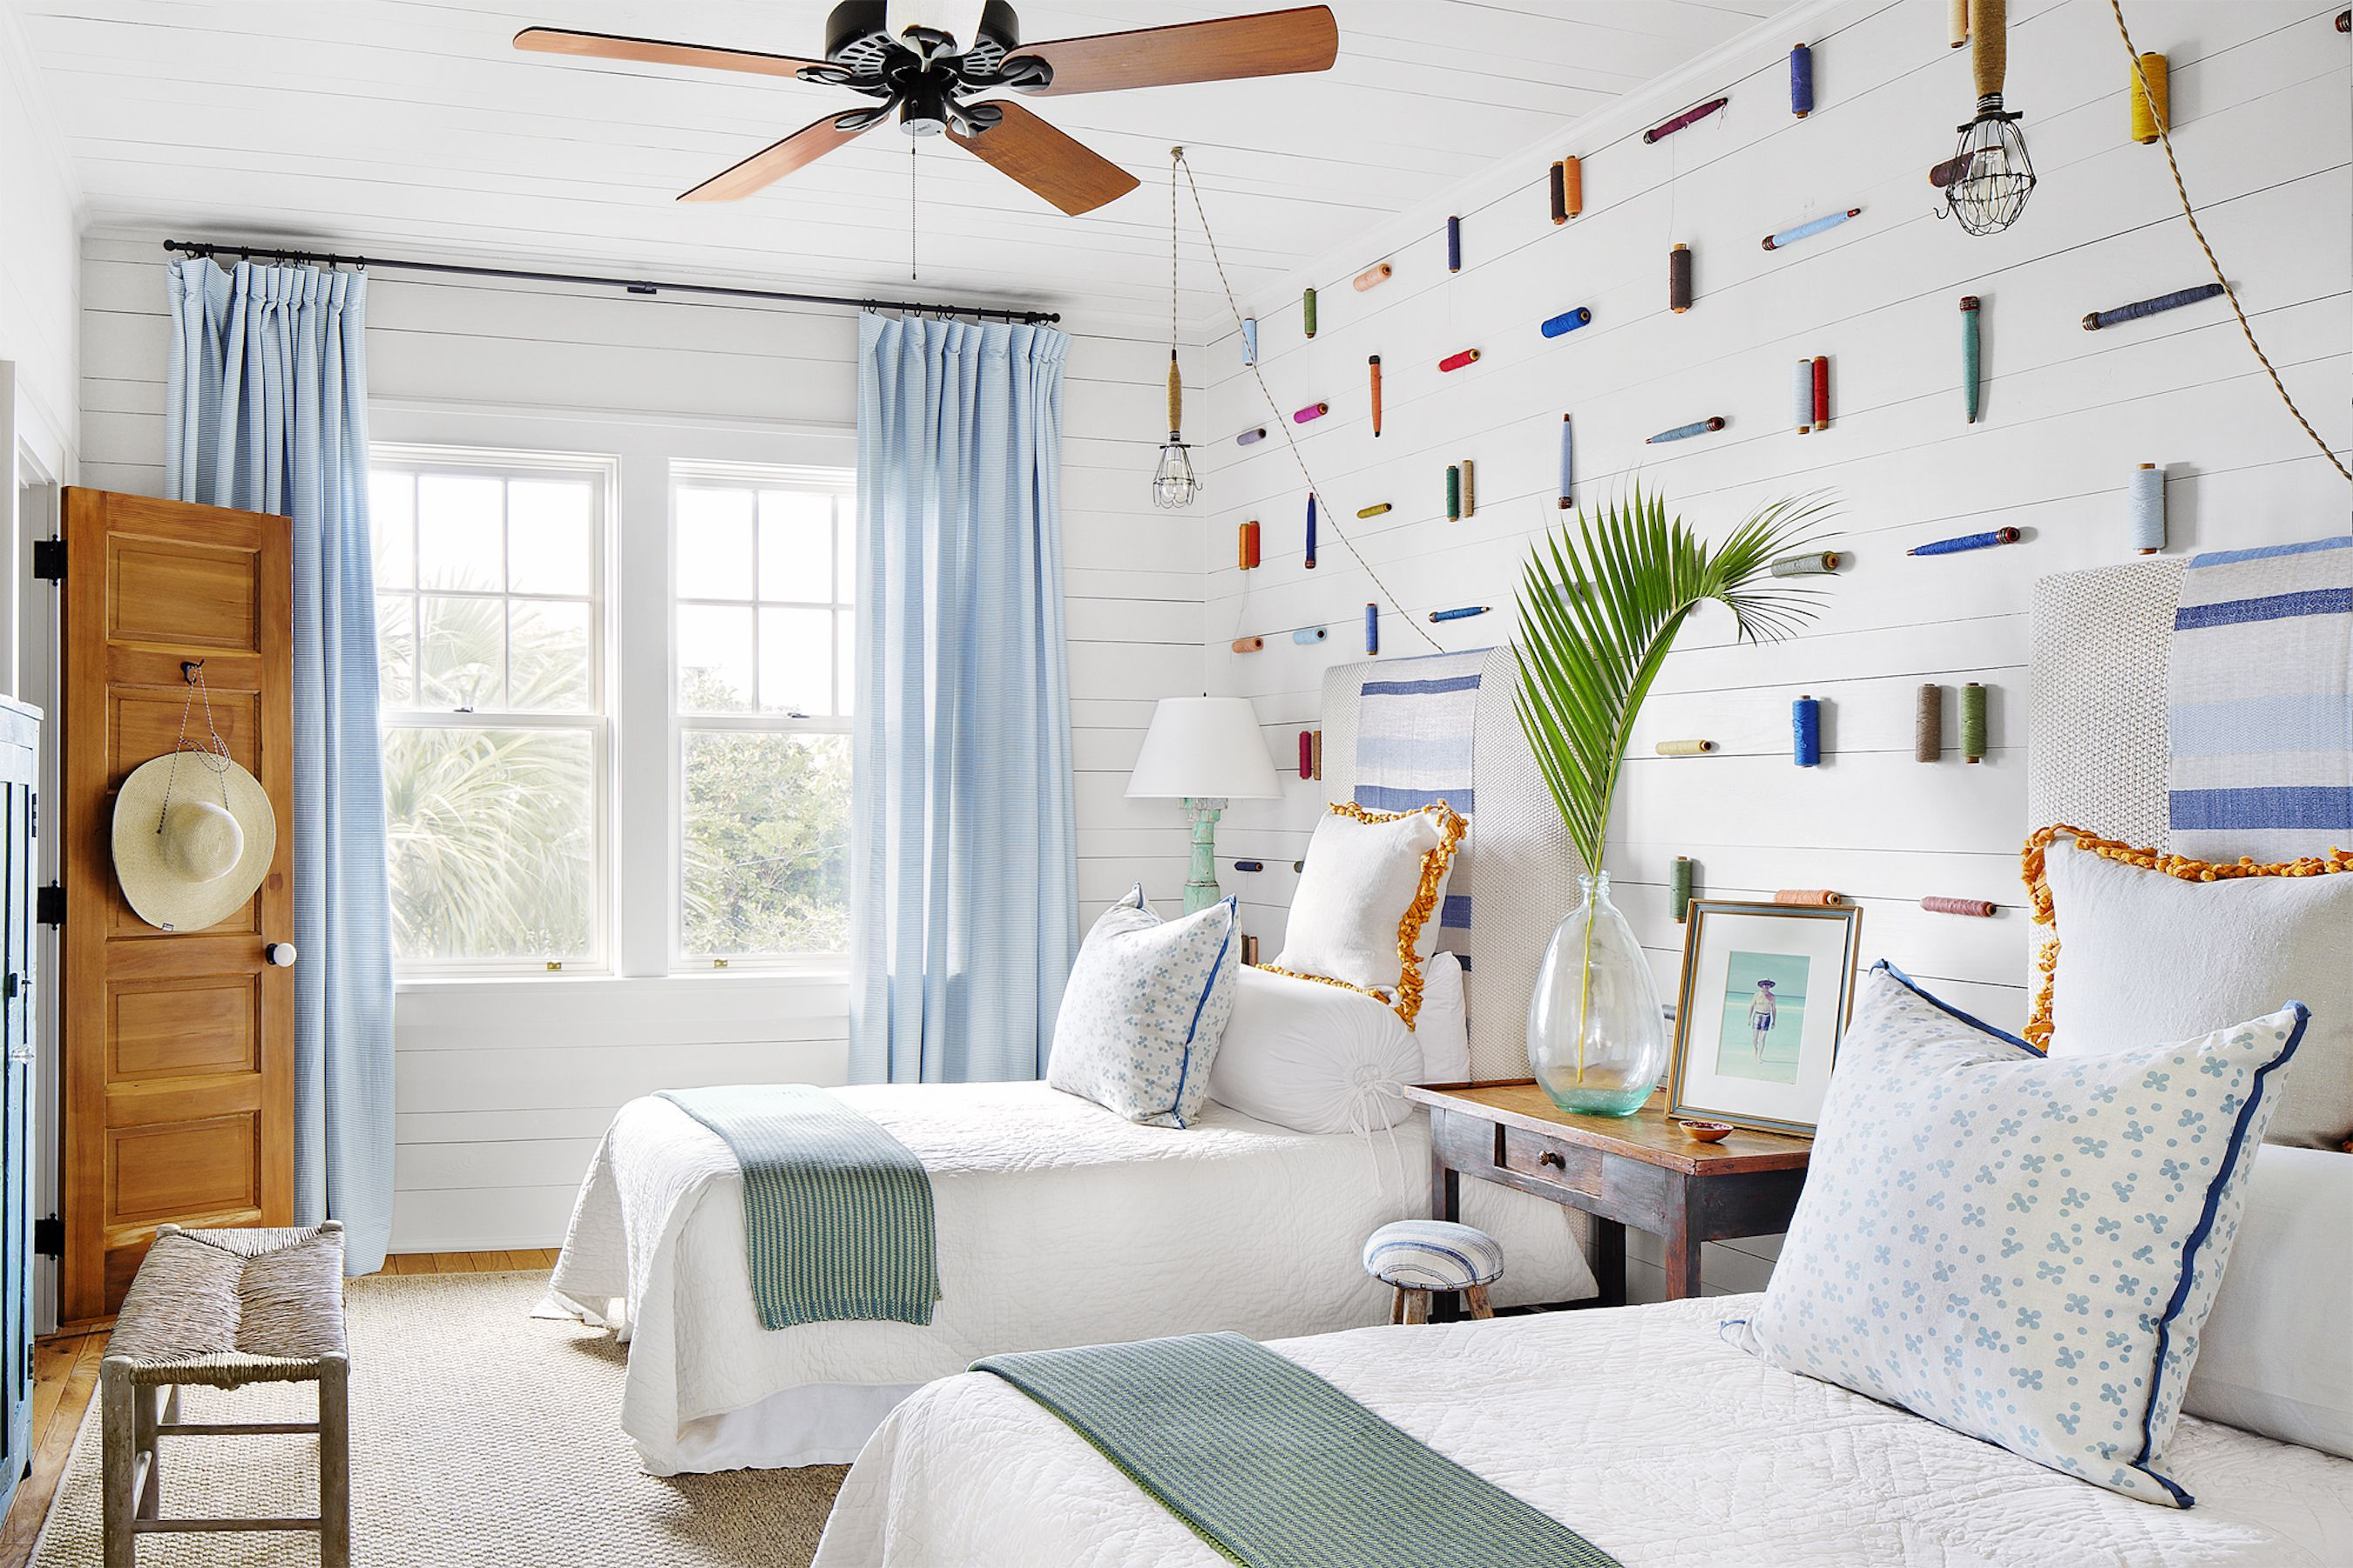 Amazing 42 Beach House Decor Ideas That Will Make Major Waves In Any Interior